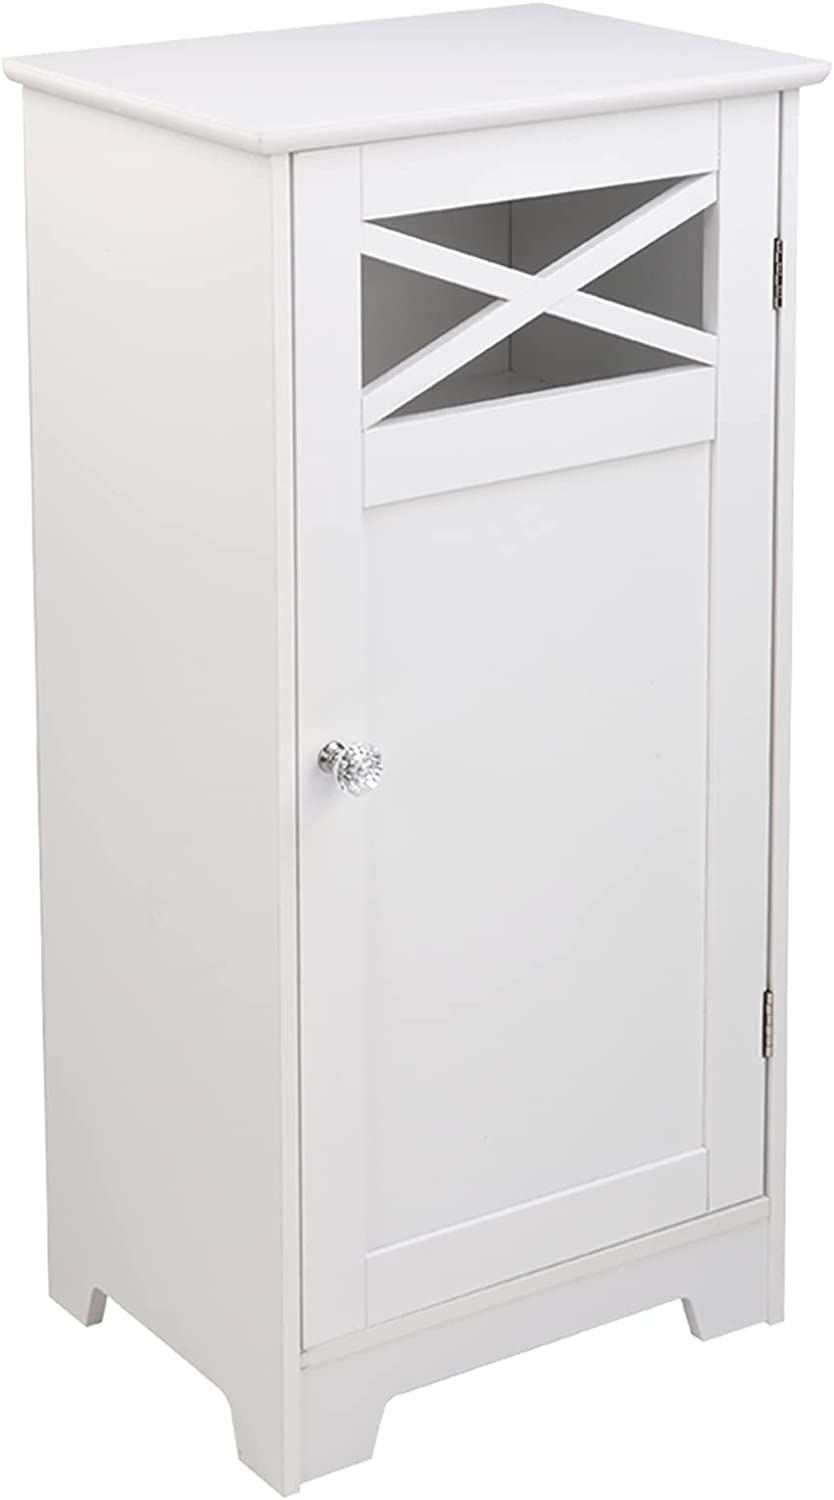 Savins gt1-zj Single A surprise New life price is realized Door White Fork Cabinet Bathroom